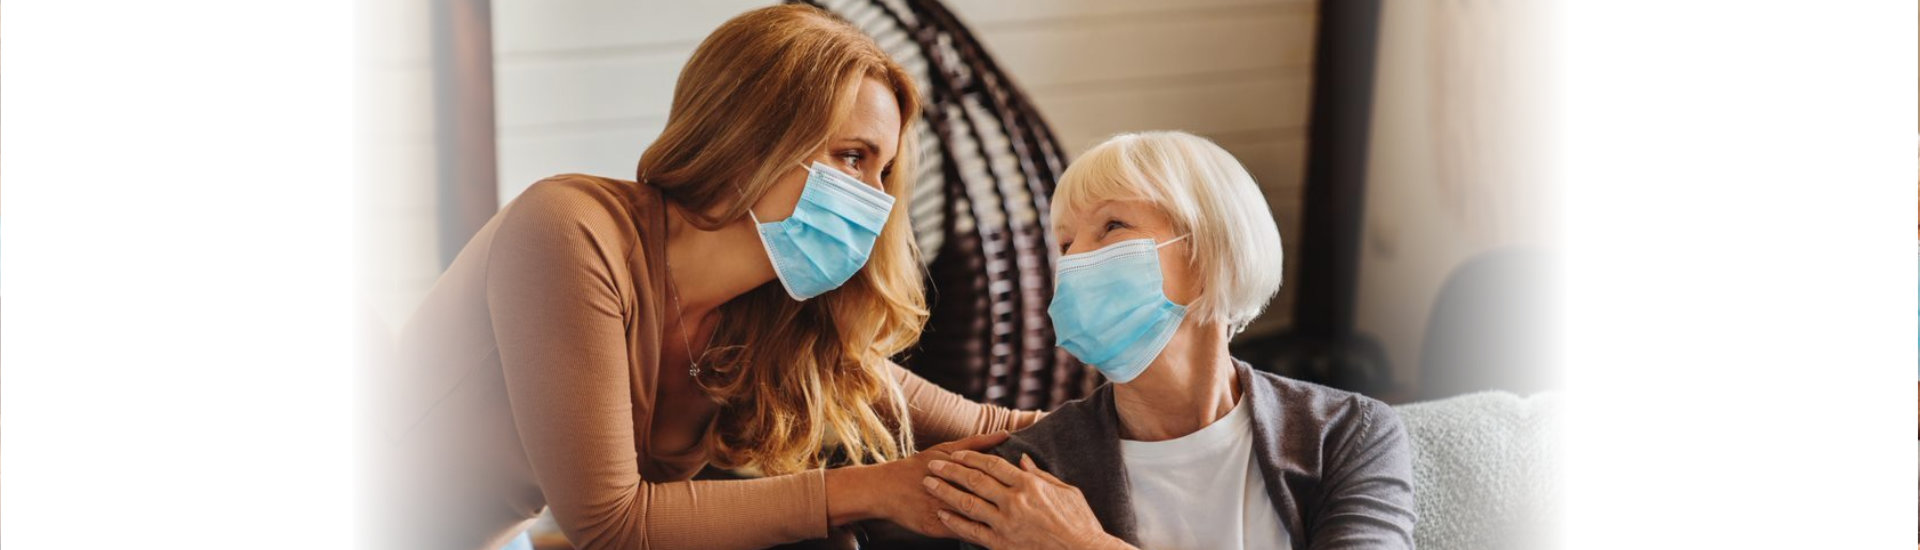 caregiver and elderly woman wearing face mask